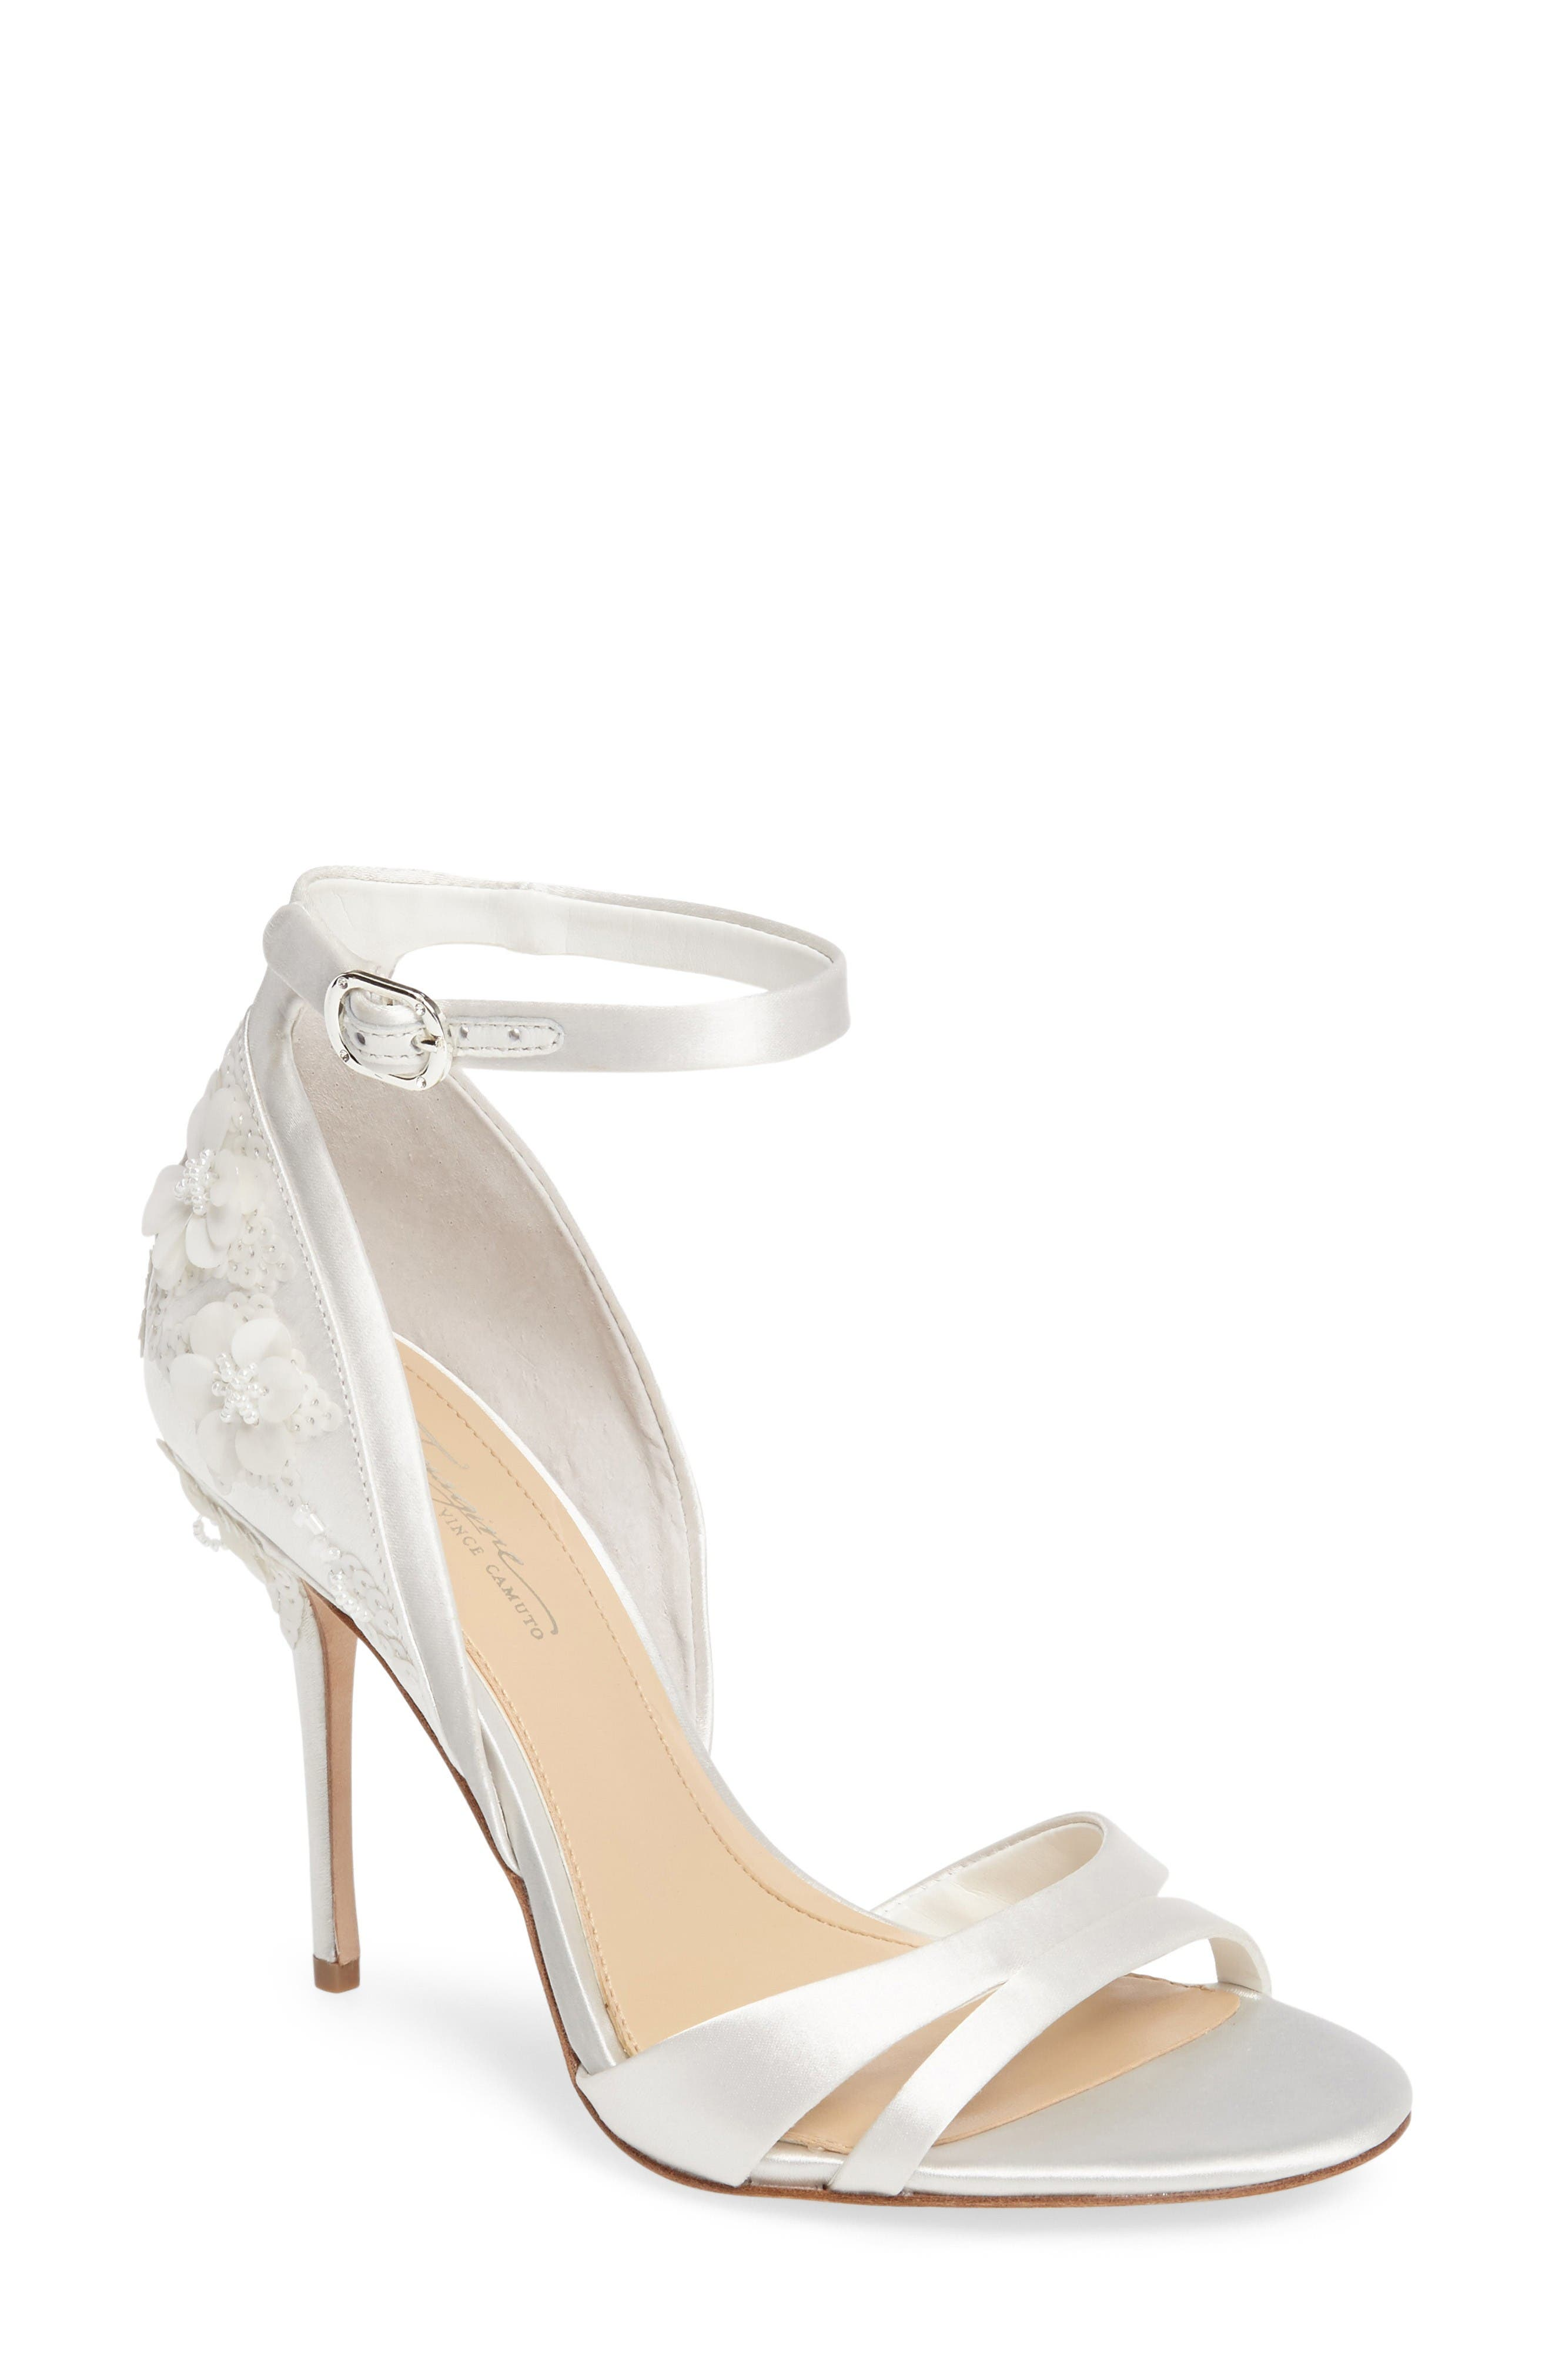 Imagine by Vince Camuto Ricia Flower Sandal (Women)